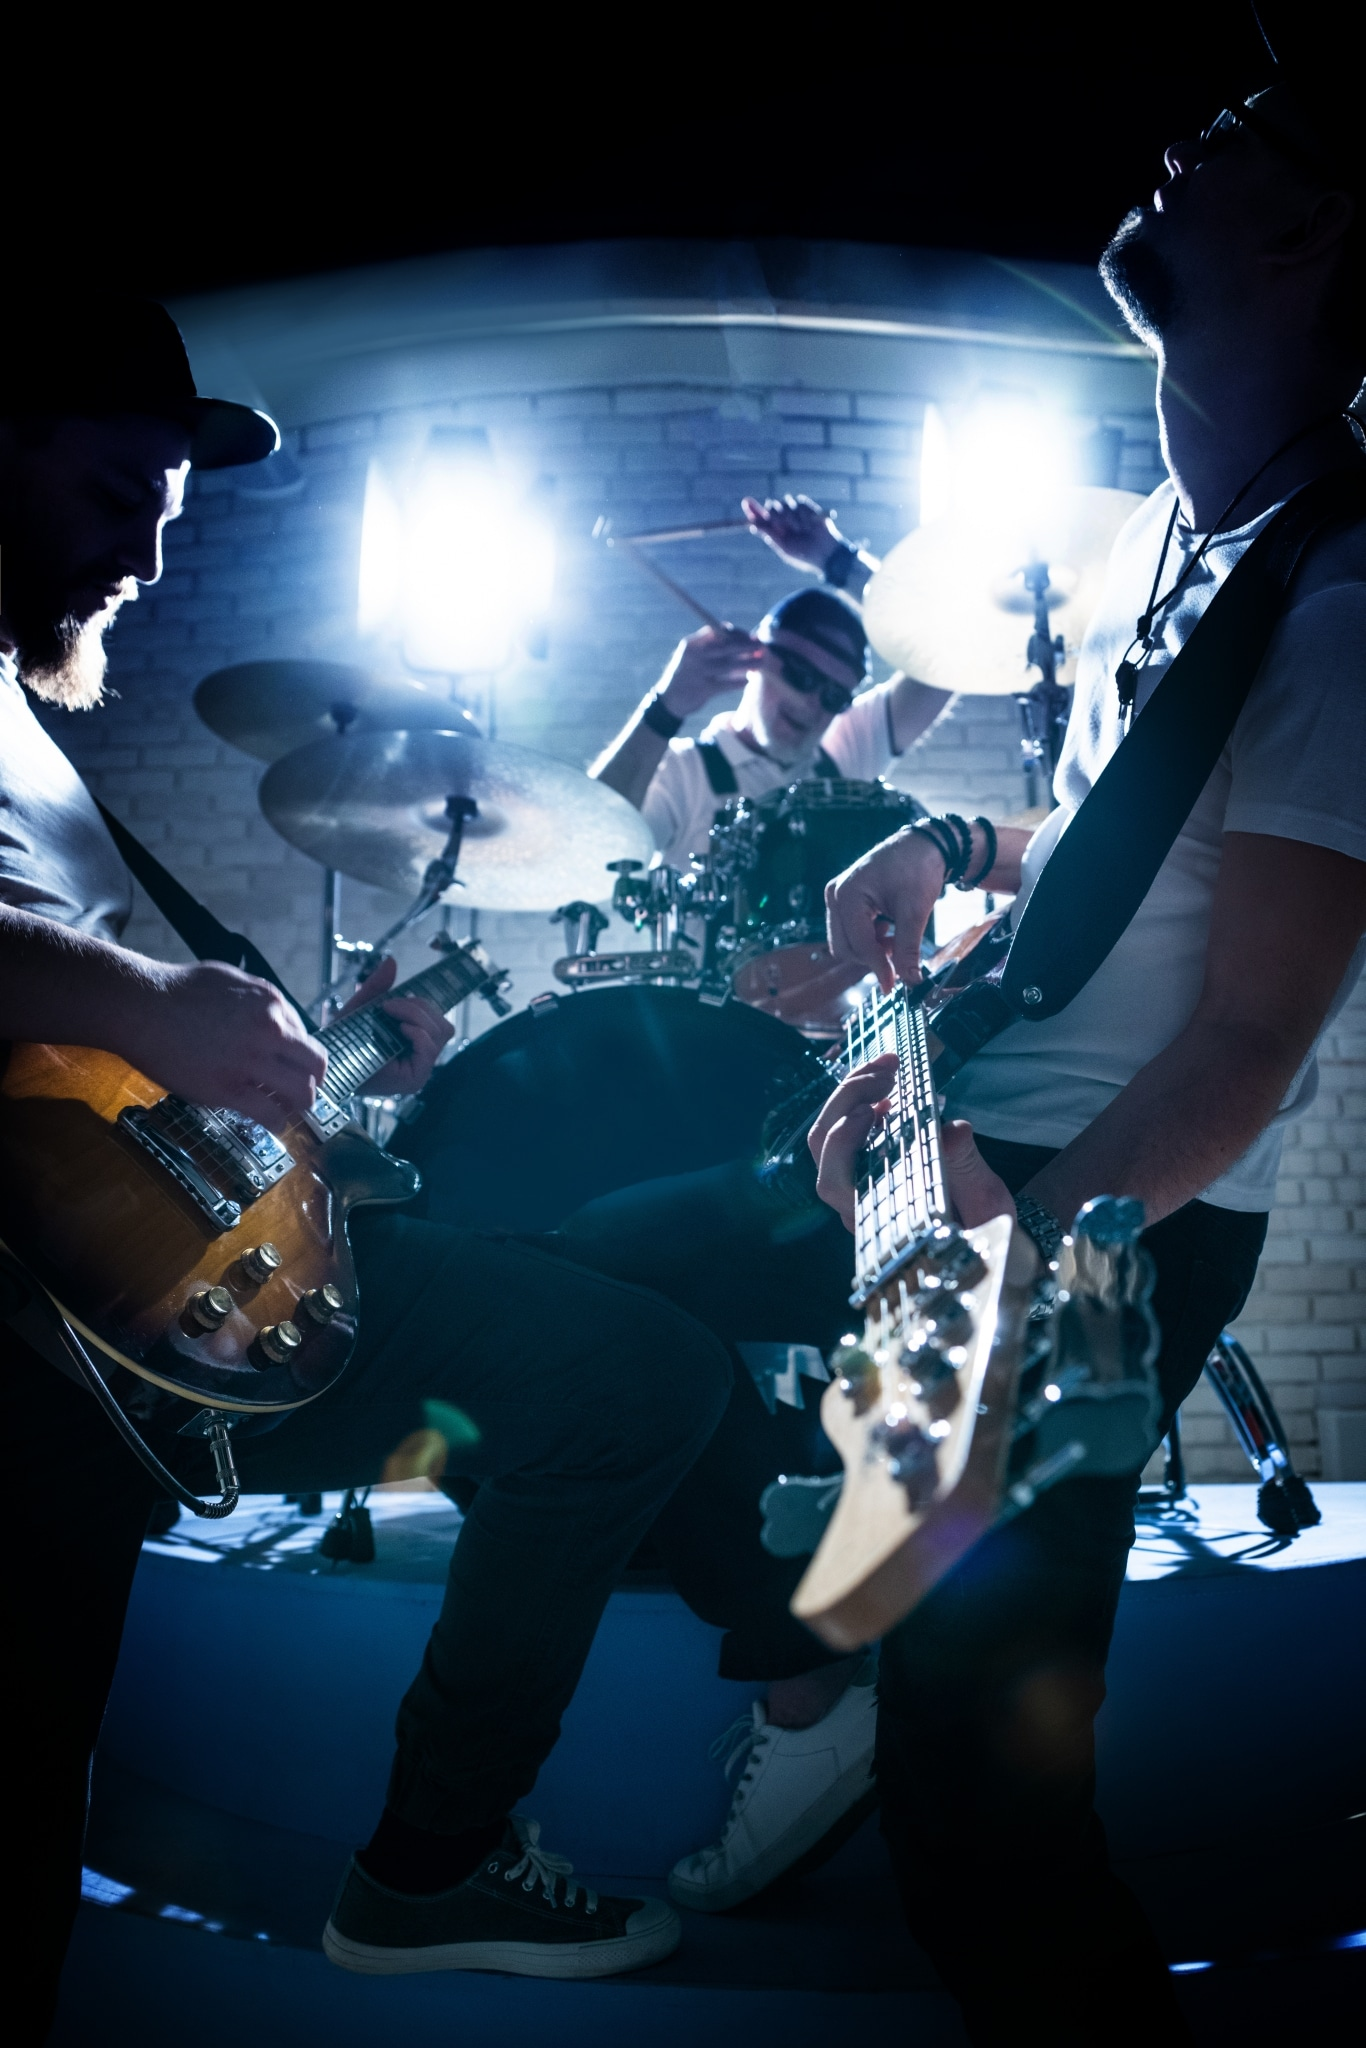 Two guitarists and a drummer play musical instruments